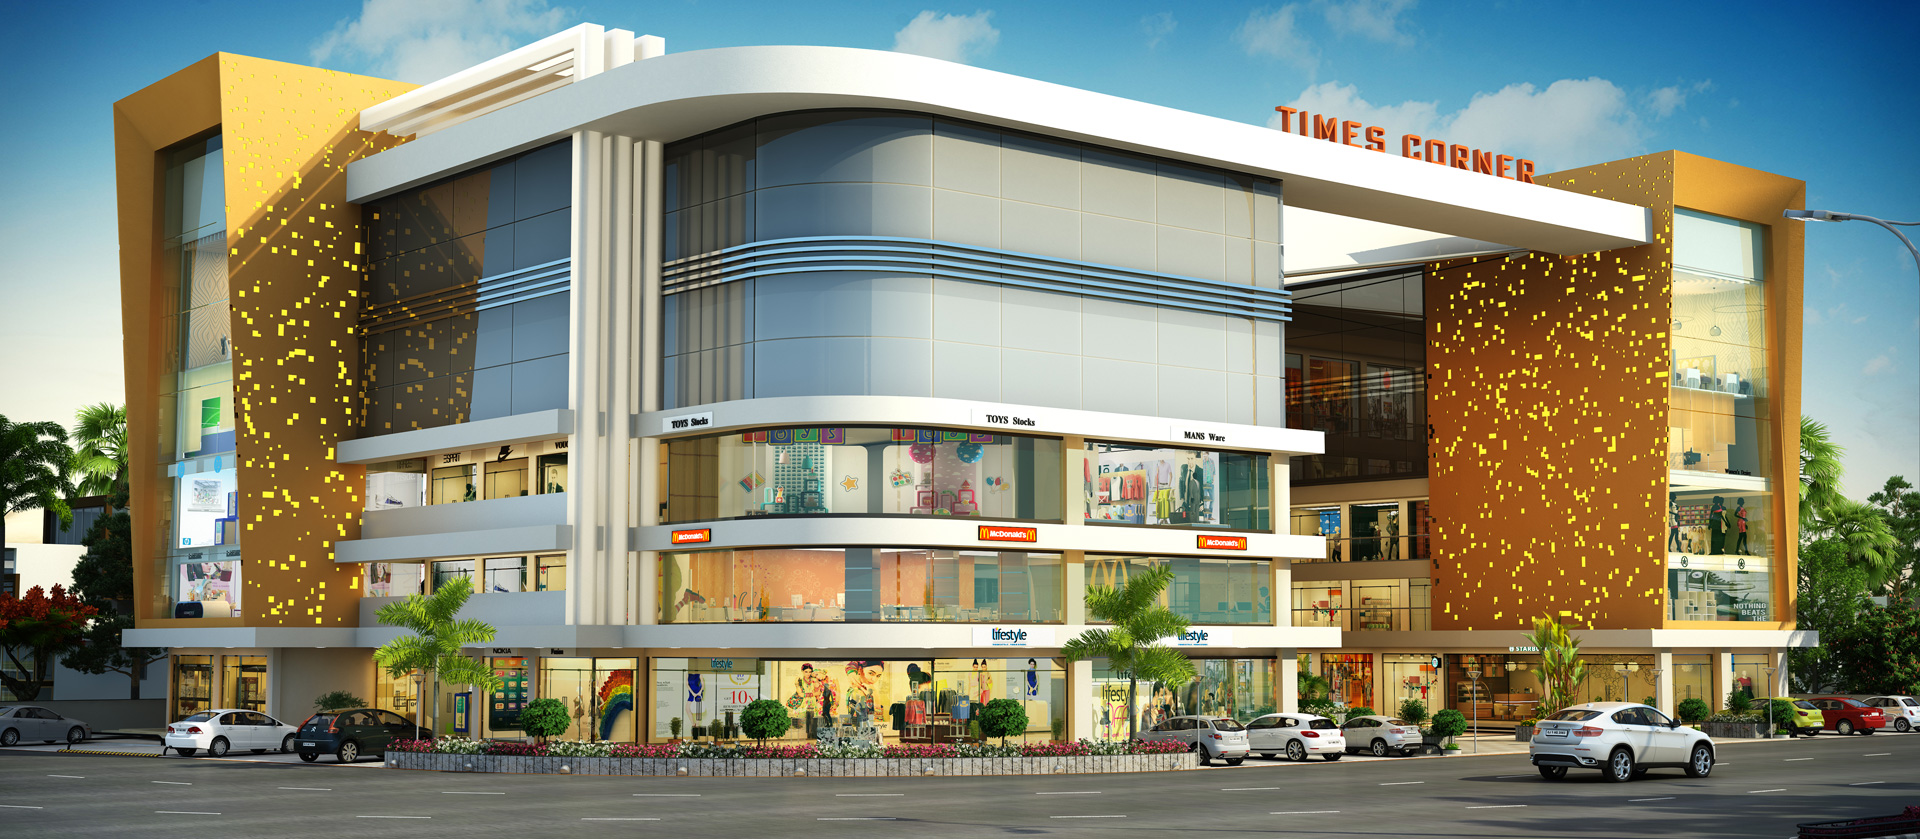 3 bhk flats in Althan surat